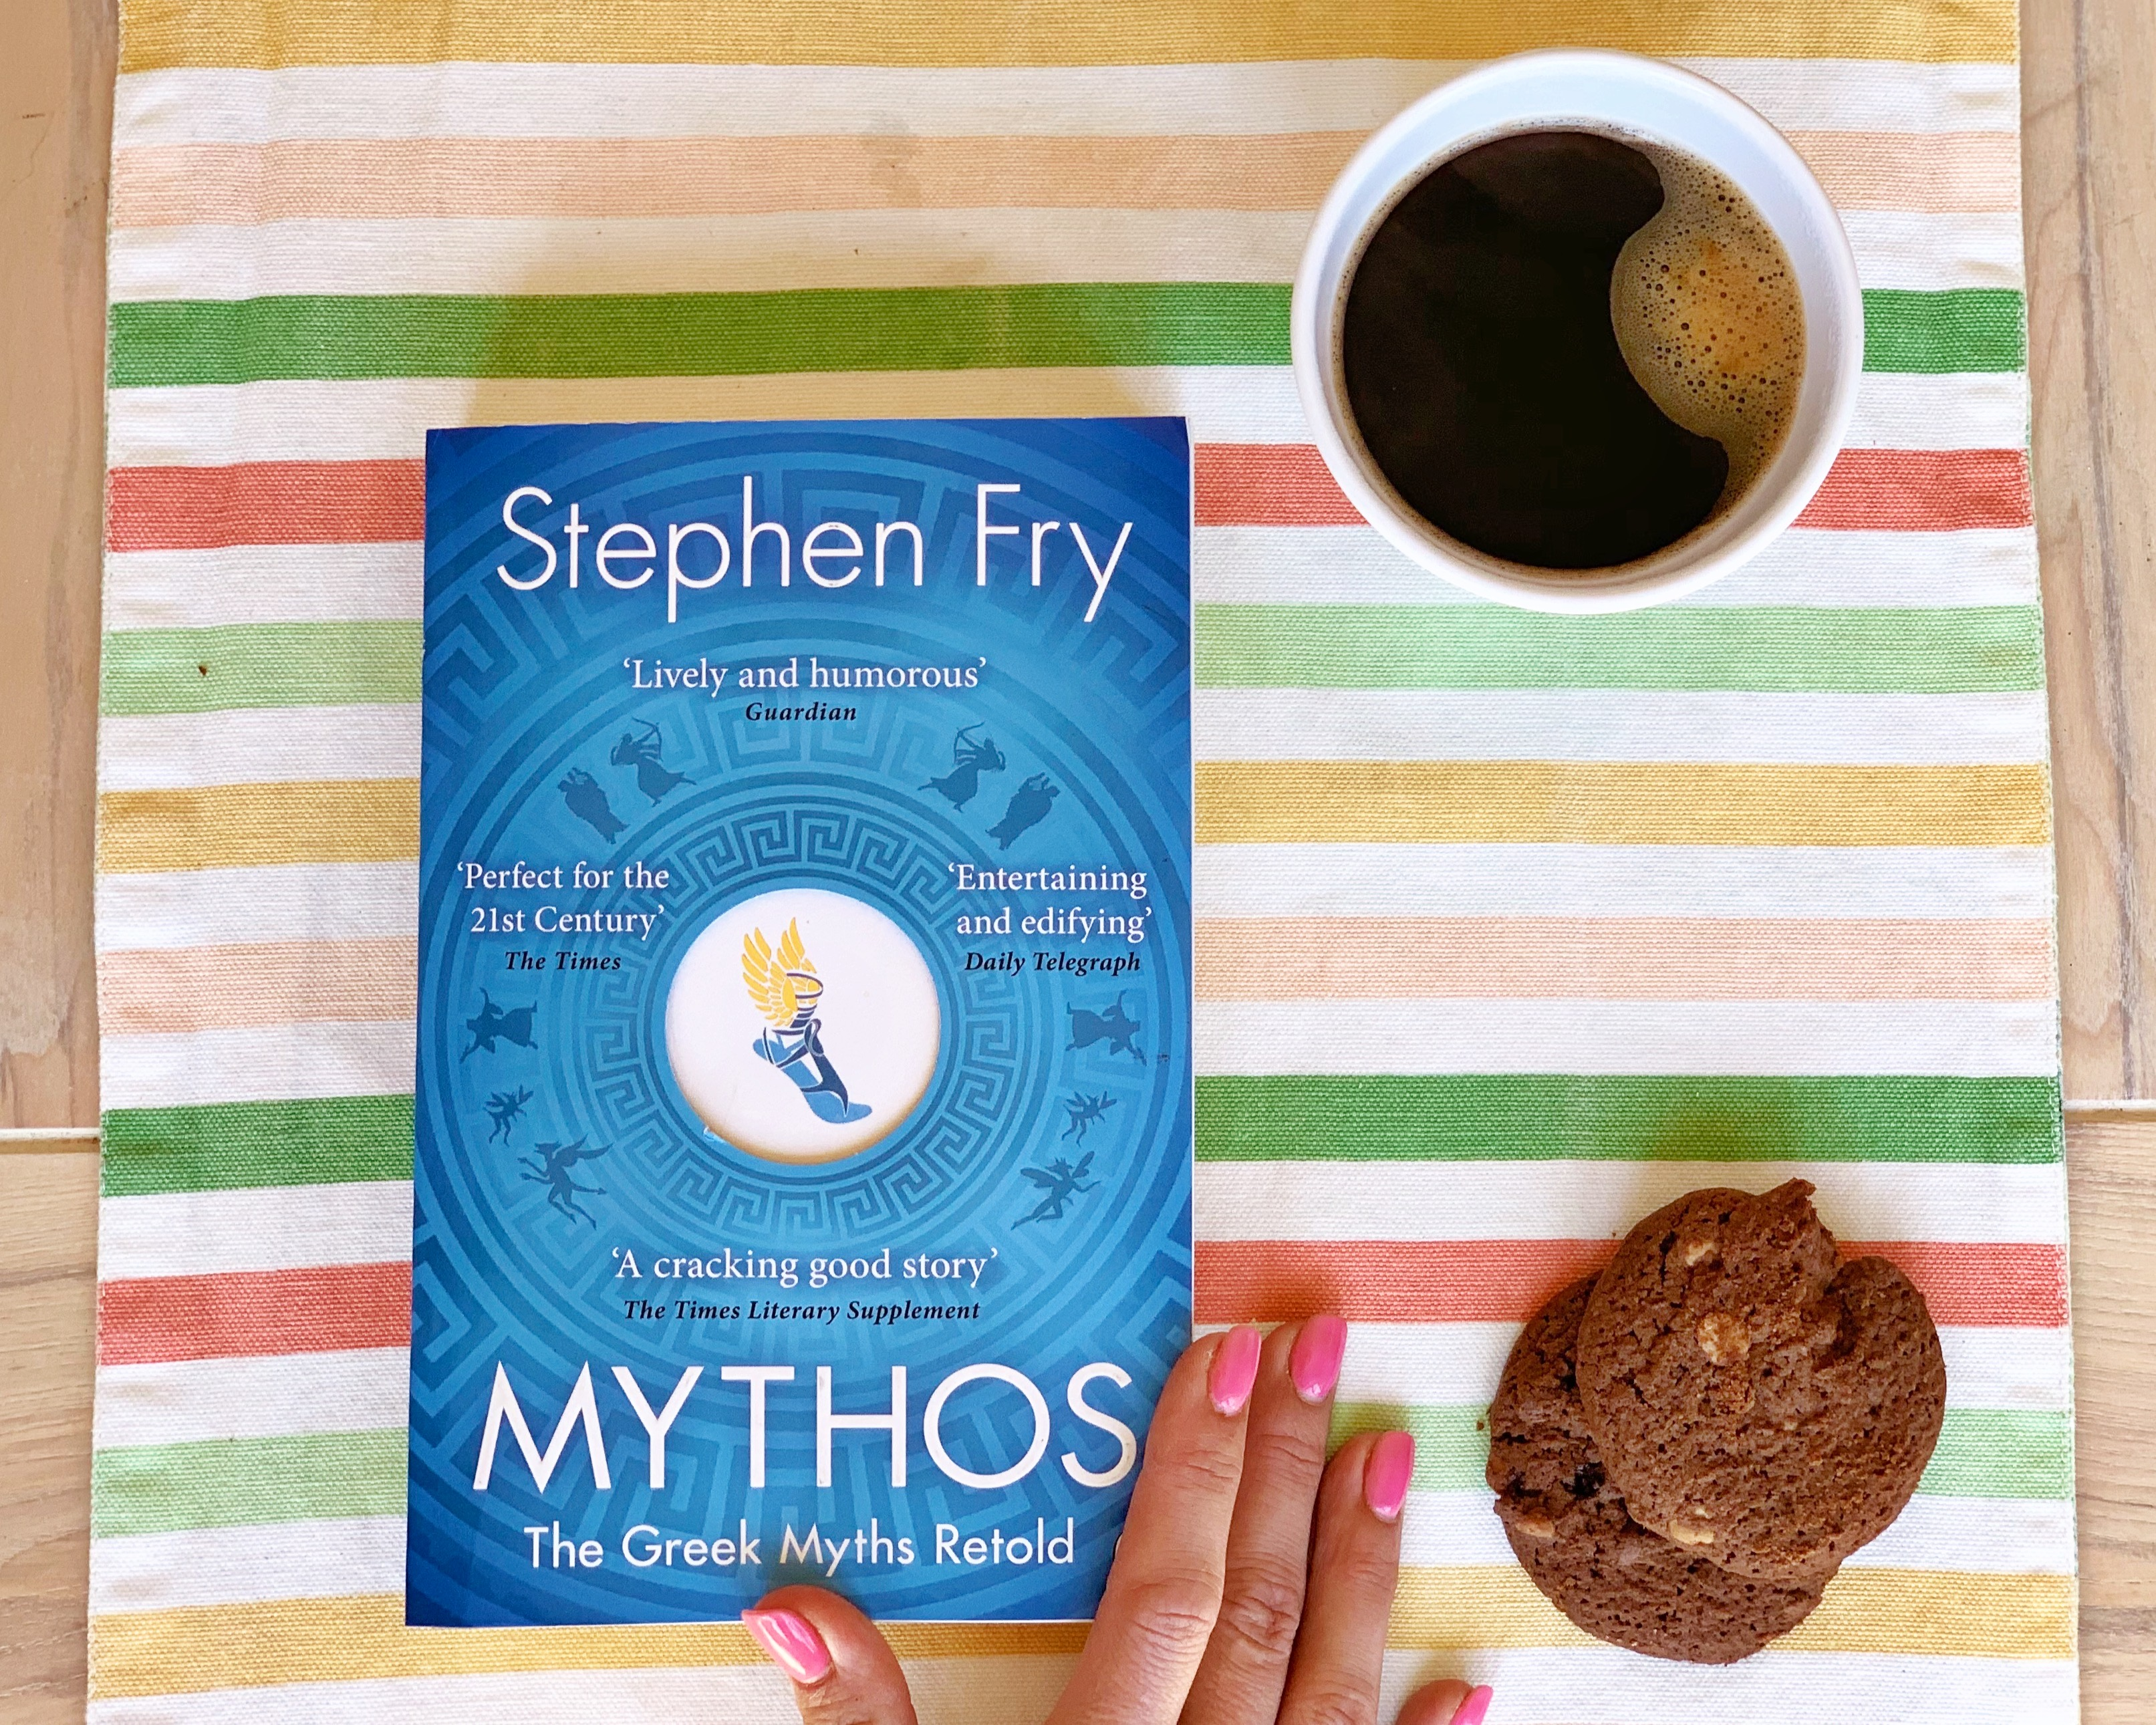 Stephen Fry Mythos reading books